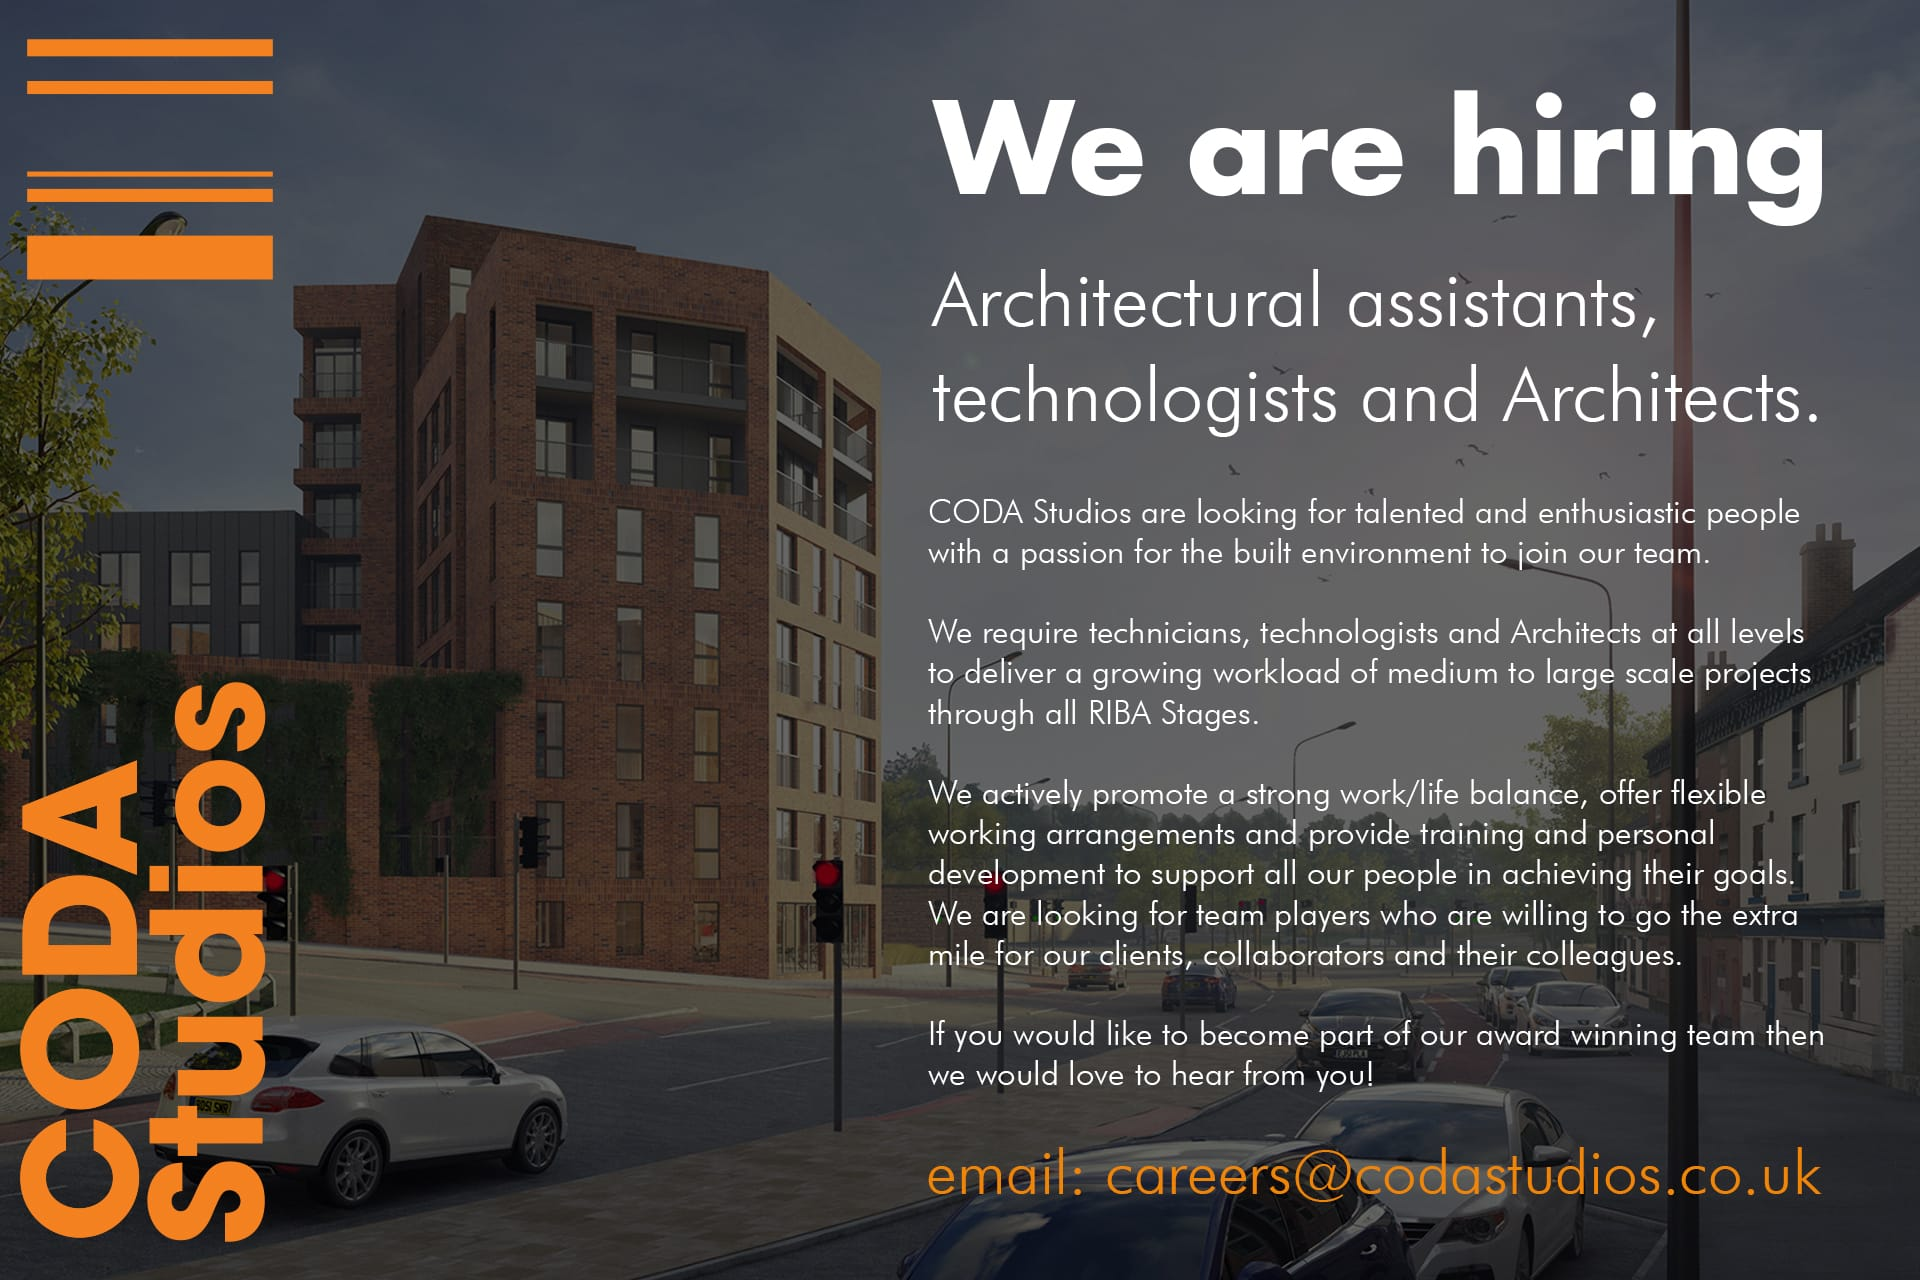 We-are-hiring,-architects,-architectural-assistants-and-technologists